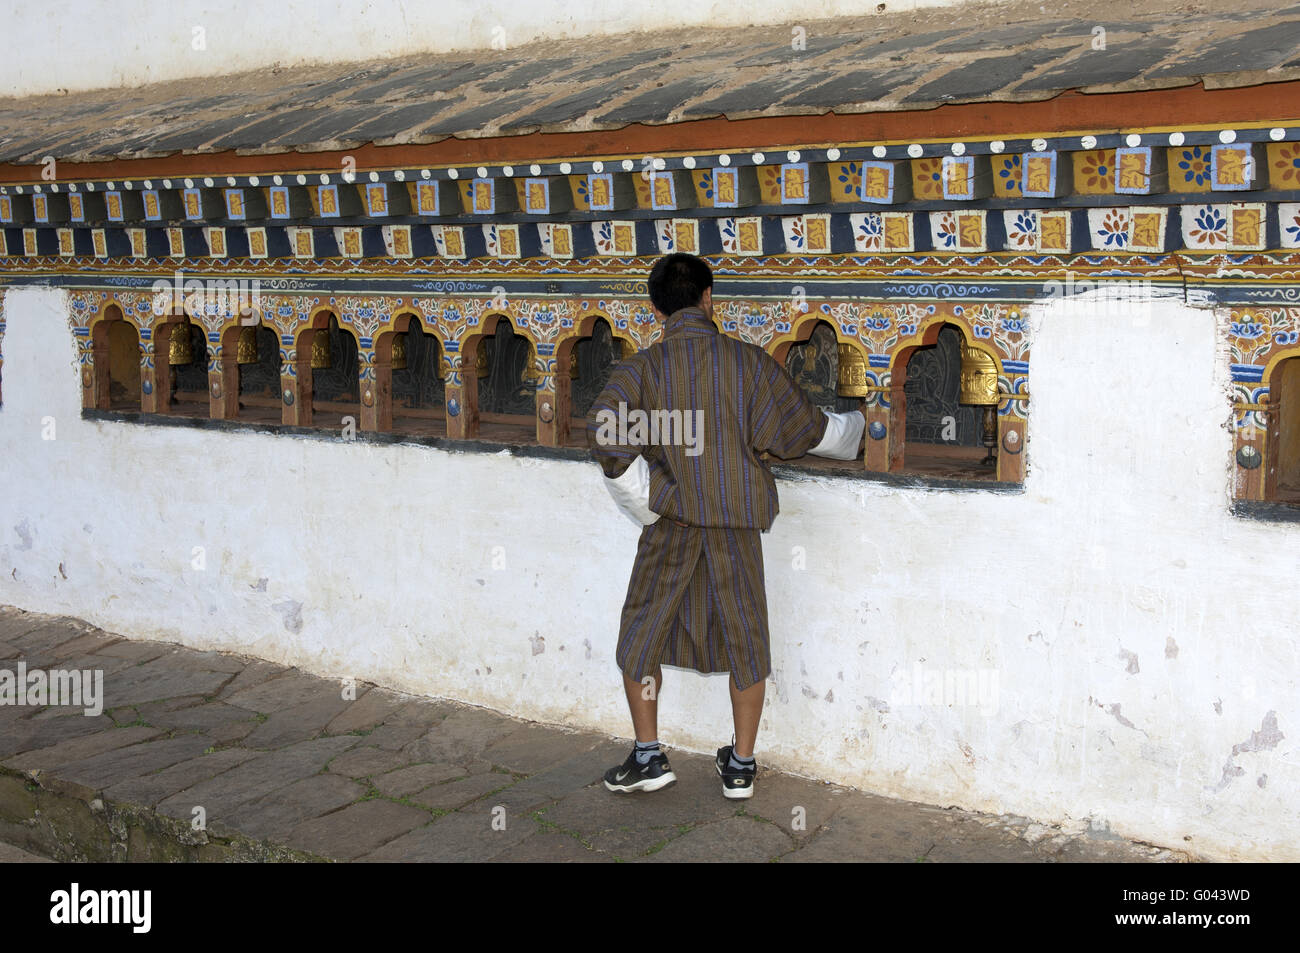 Bhutanese man at a prayer mill in the Temple - Stock Image